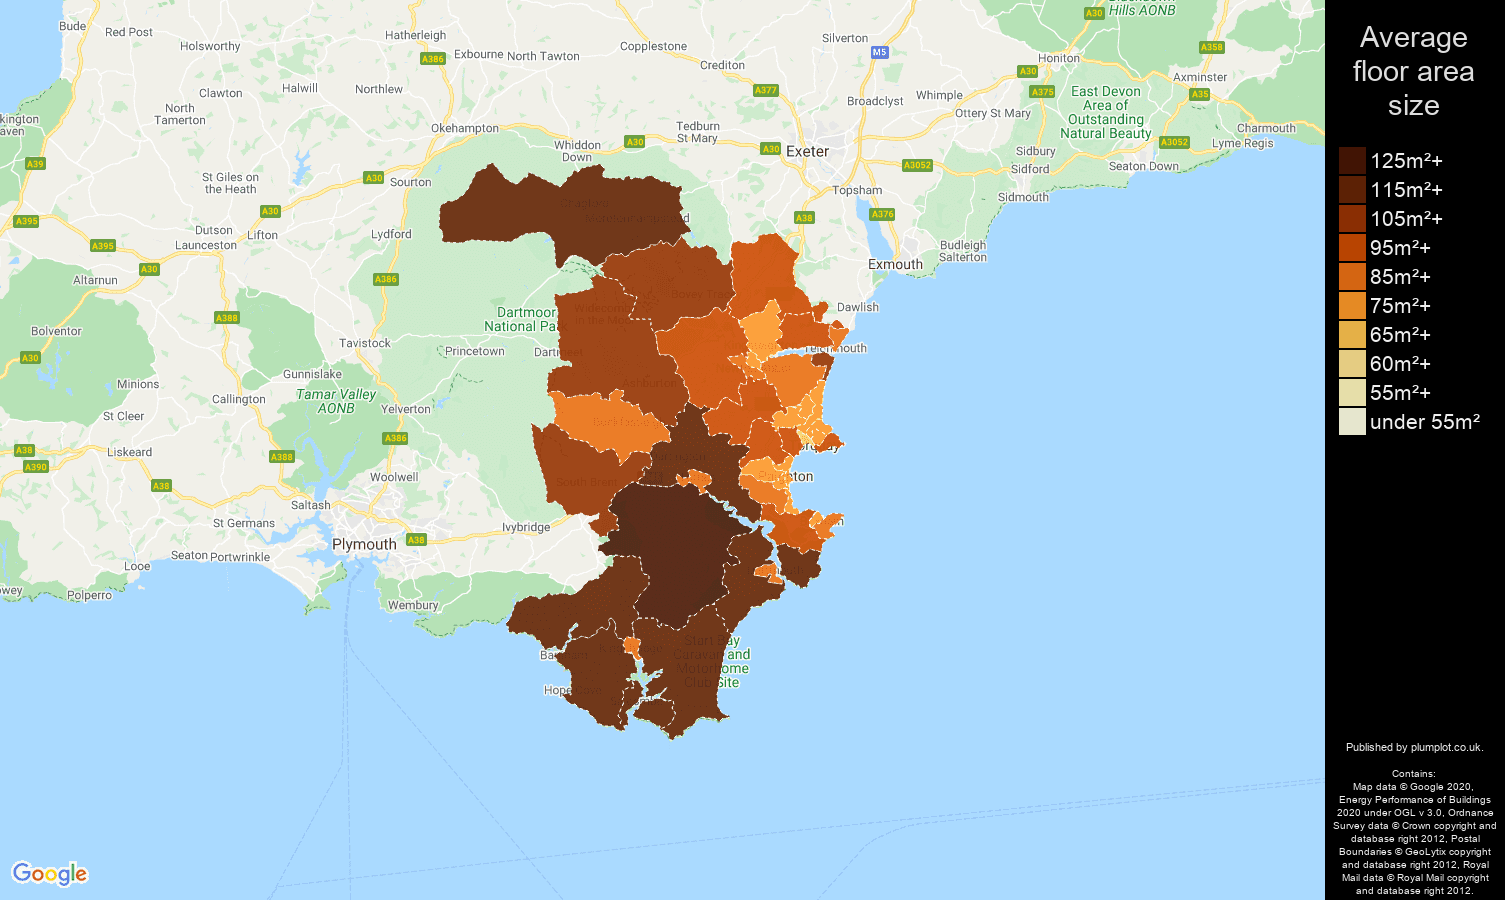 Torquay map of average floor area size of properties